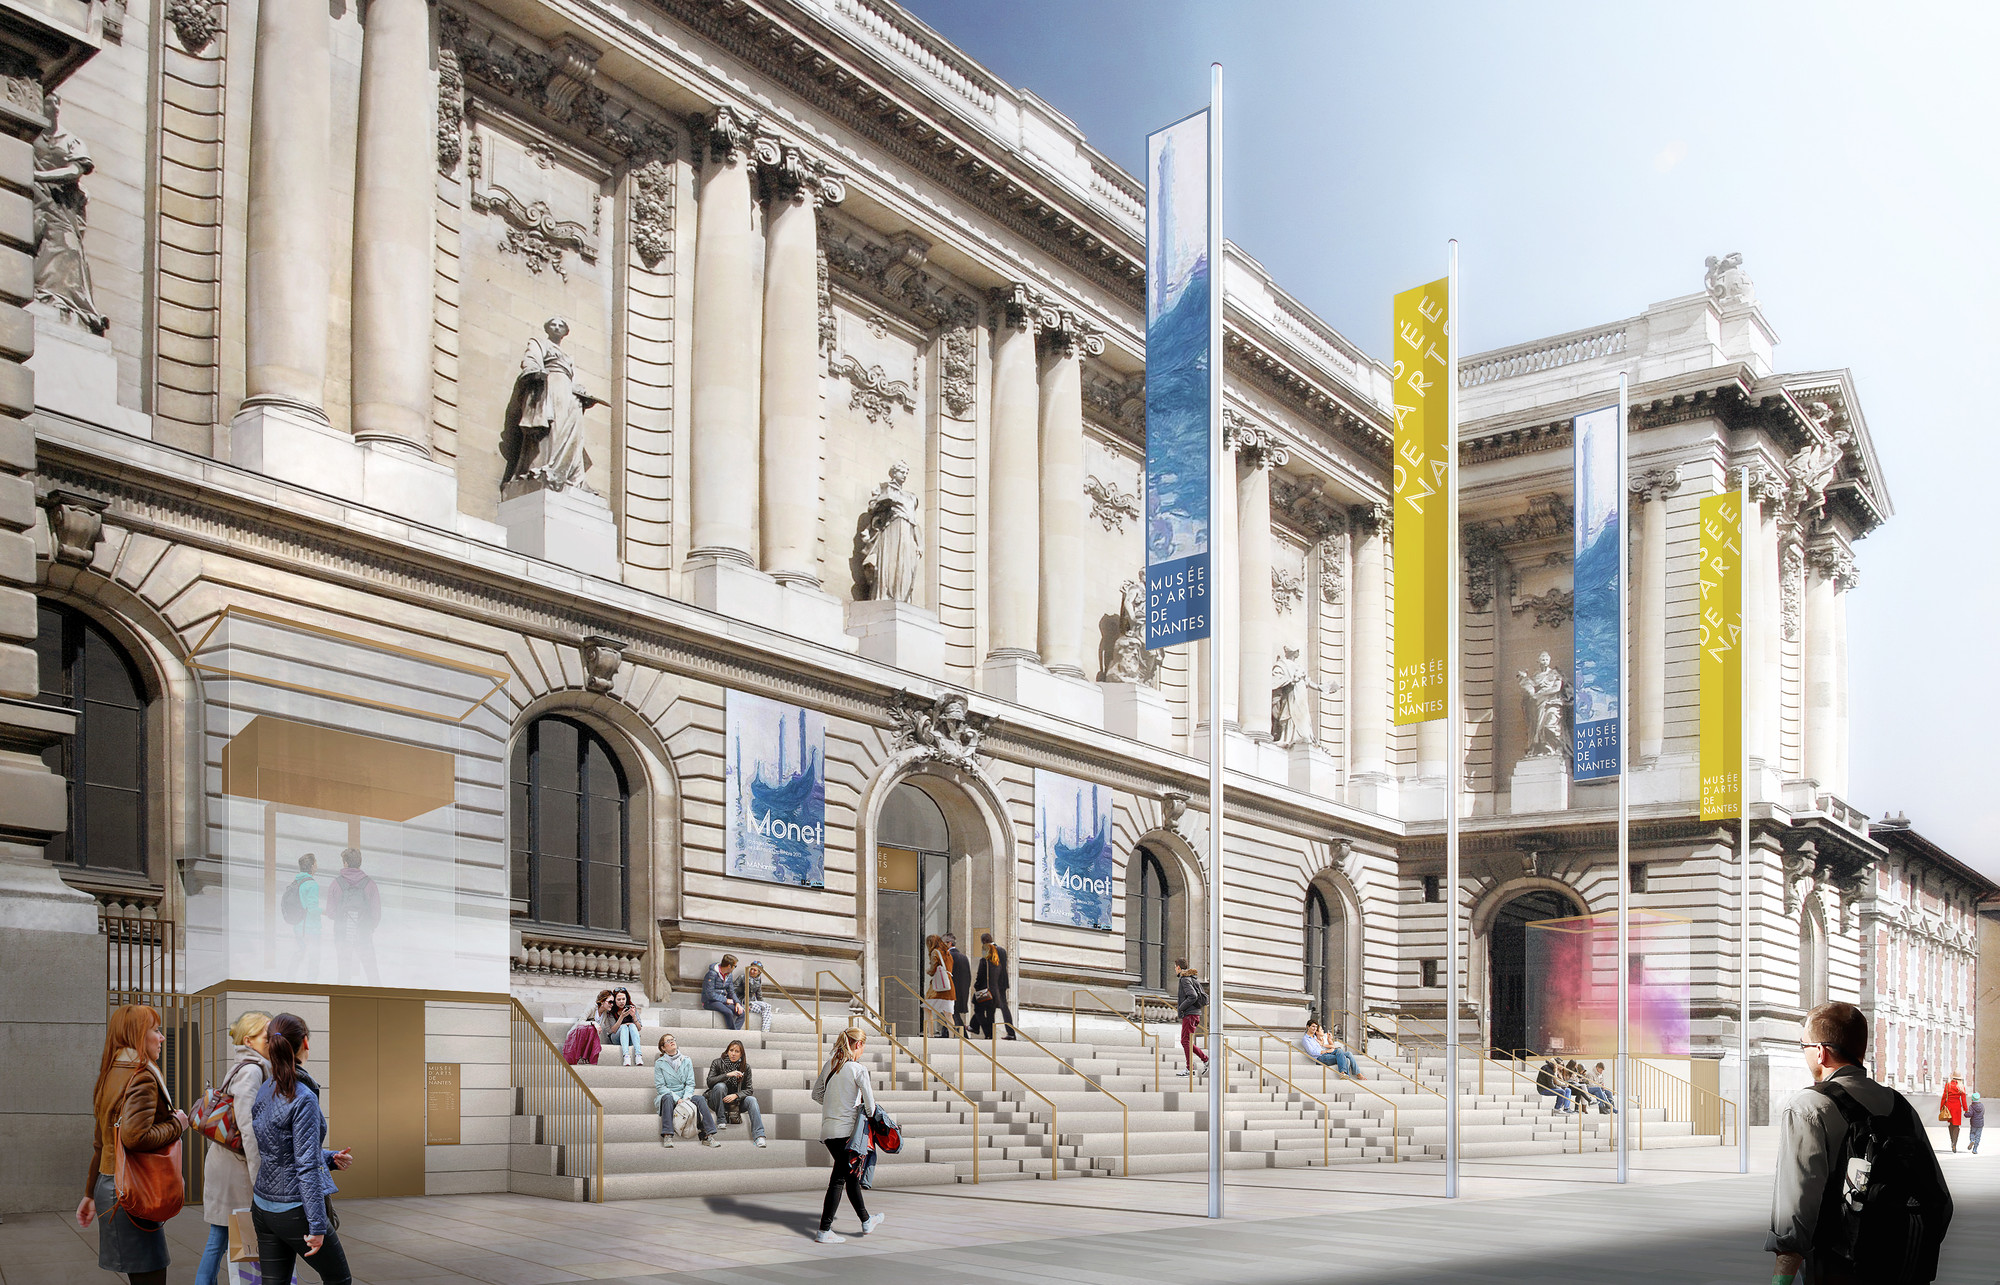 Video stanton williams explain their design for the nantes mus e des beaux arts archdaily - Musee des beaux arts nantes ...